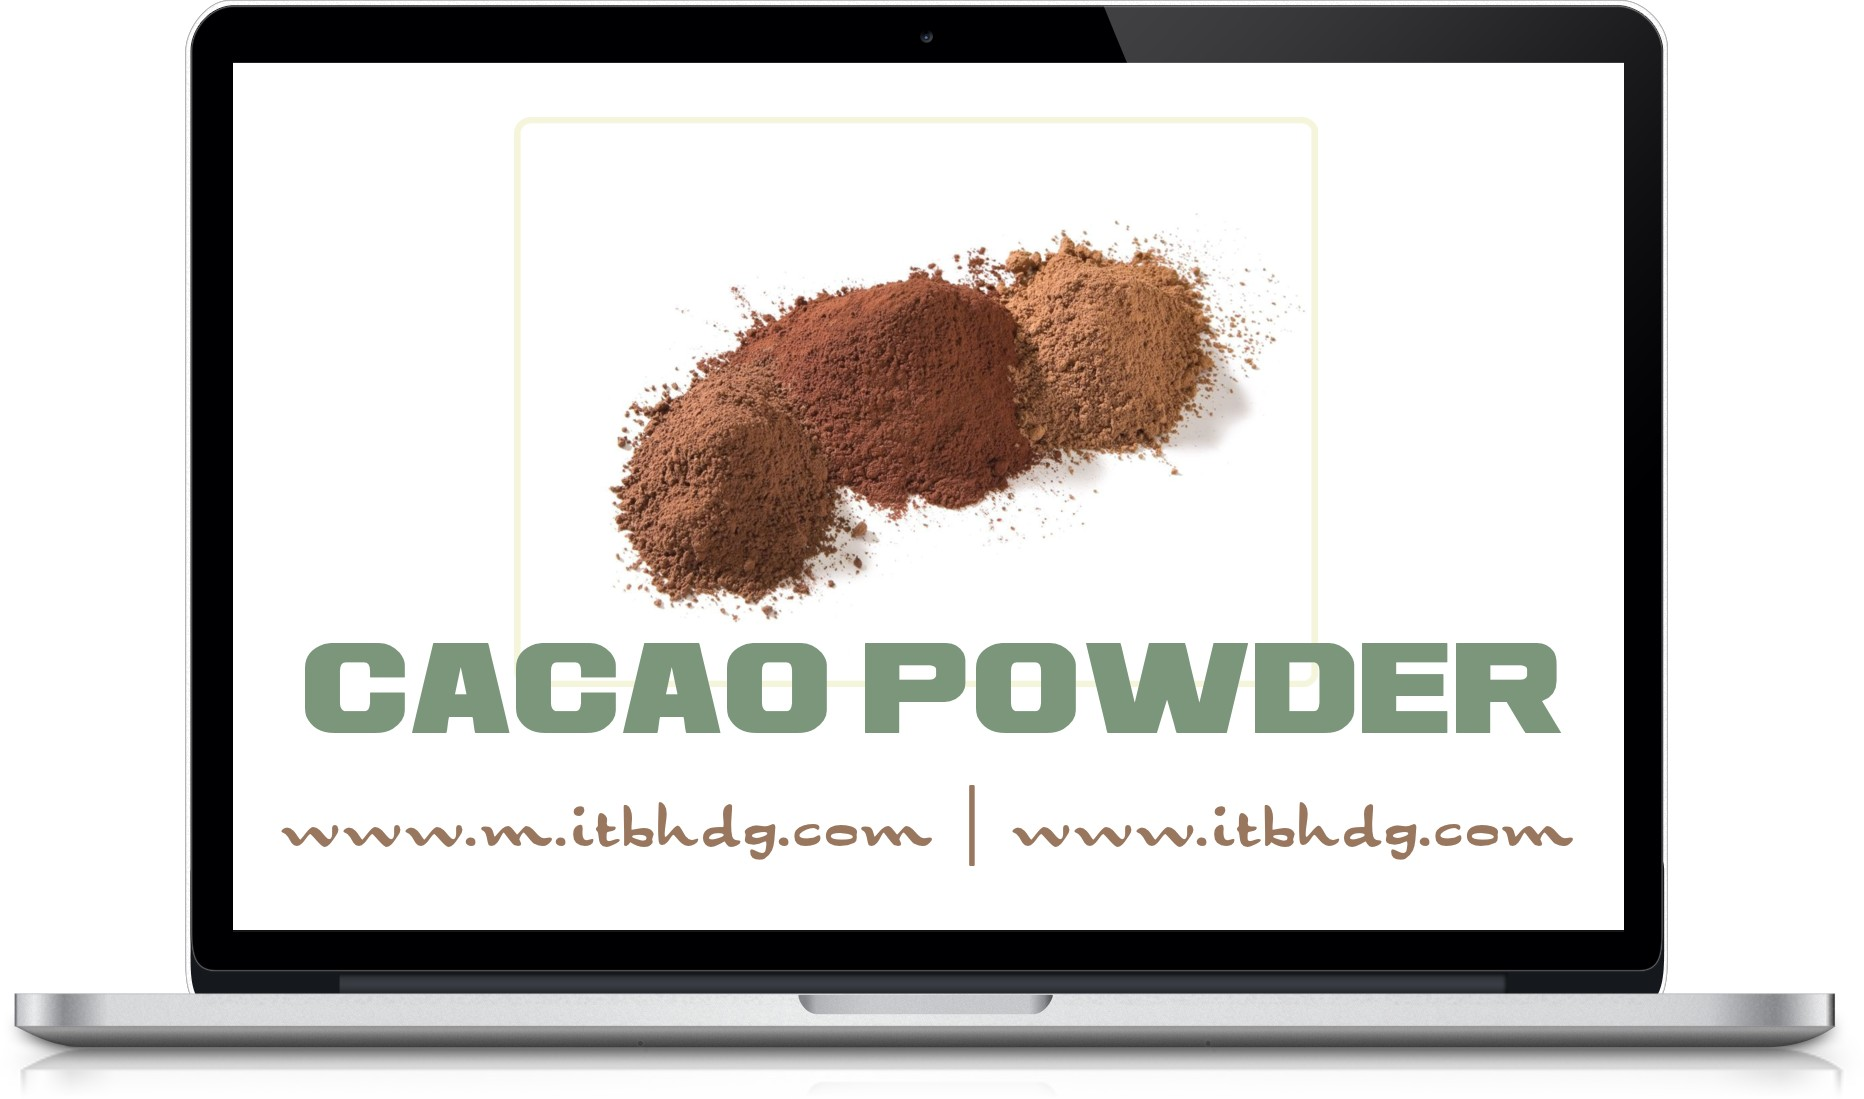 CACAO POWDER | SHOP and SAVE 35%